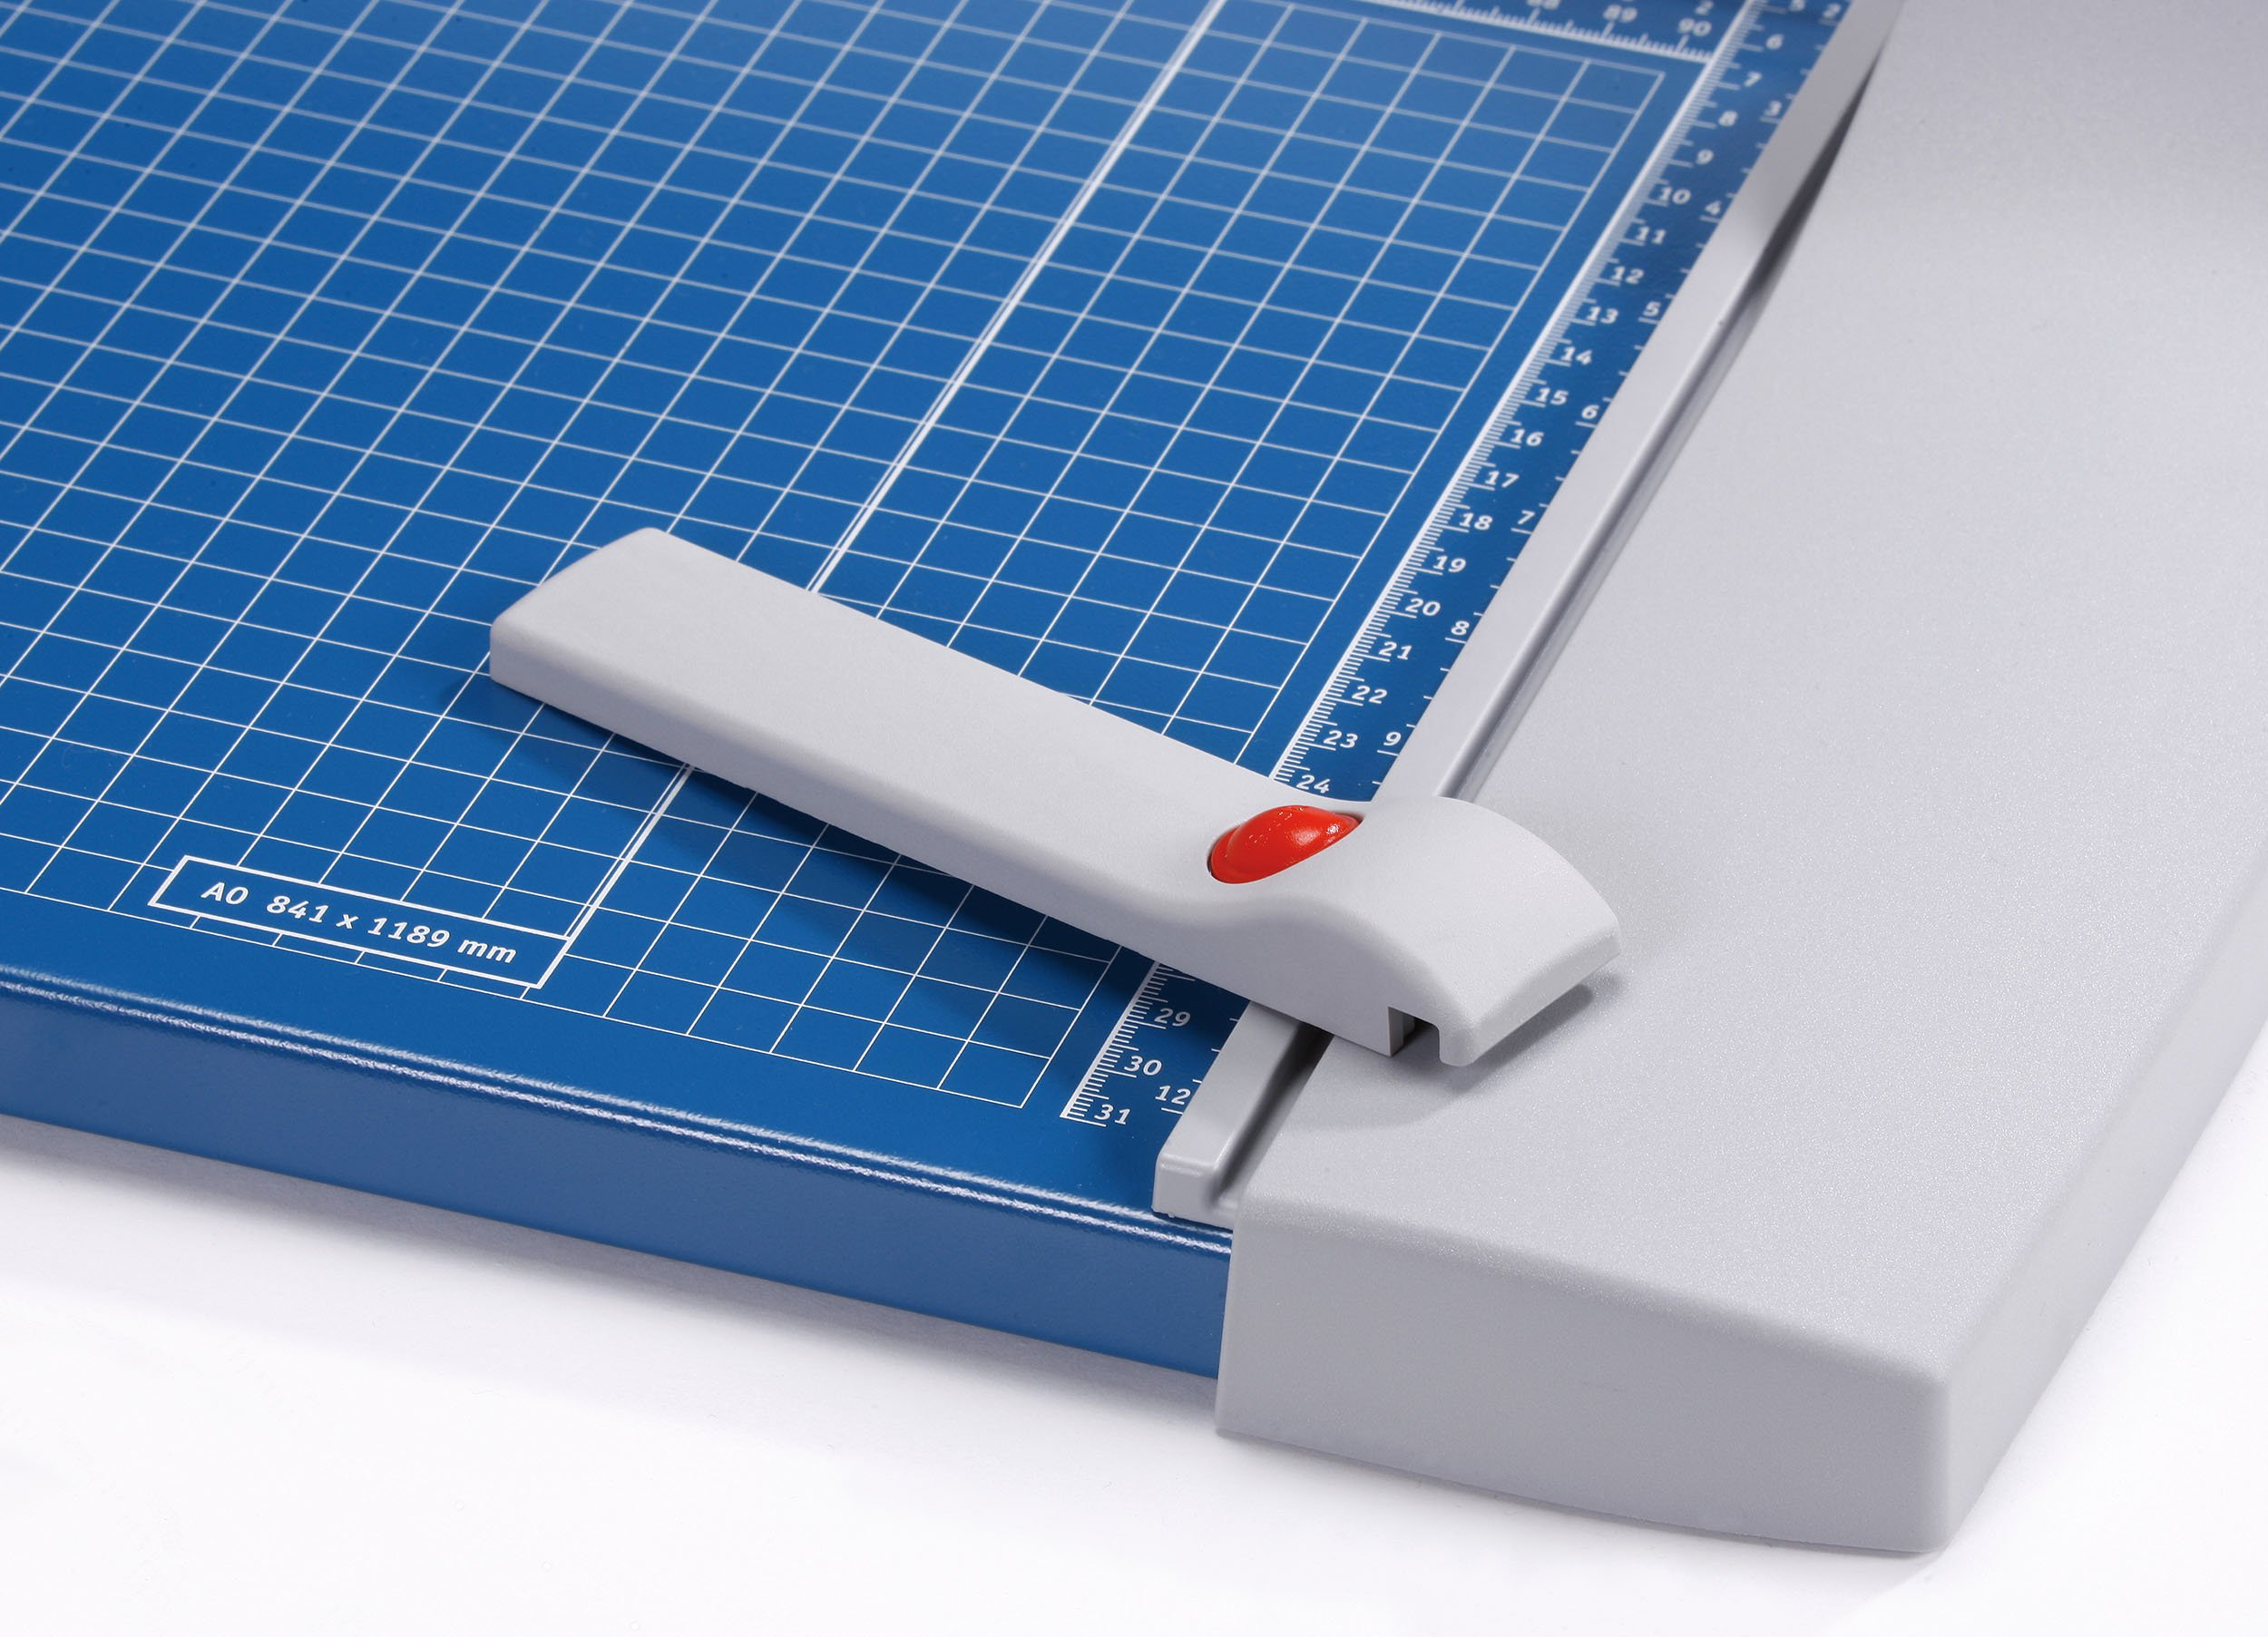 Dahle Premium 446 Rolling Trimmer [Office Product]